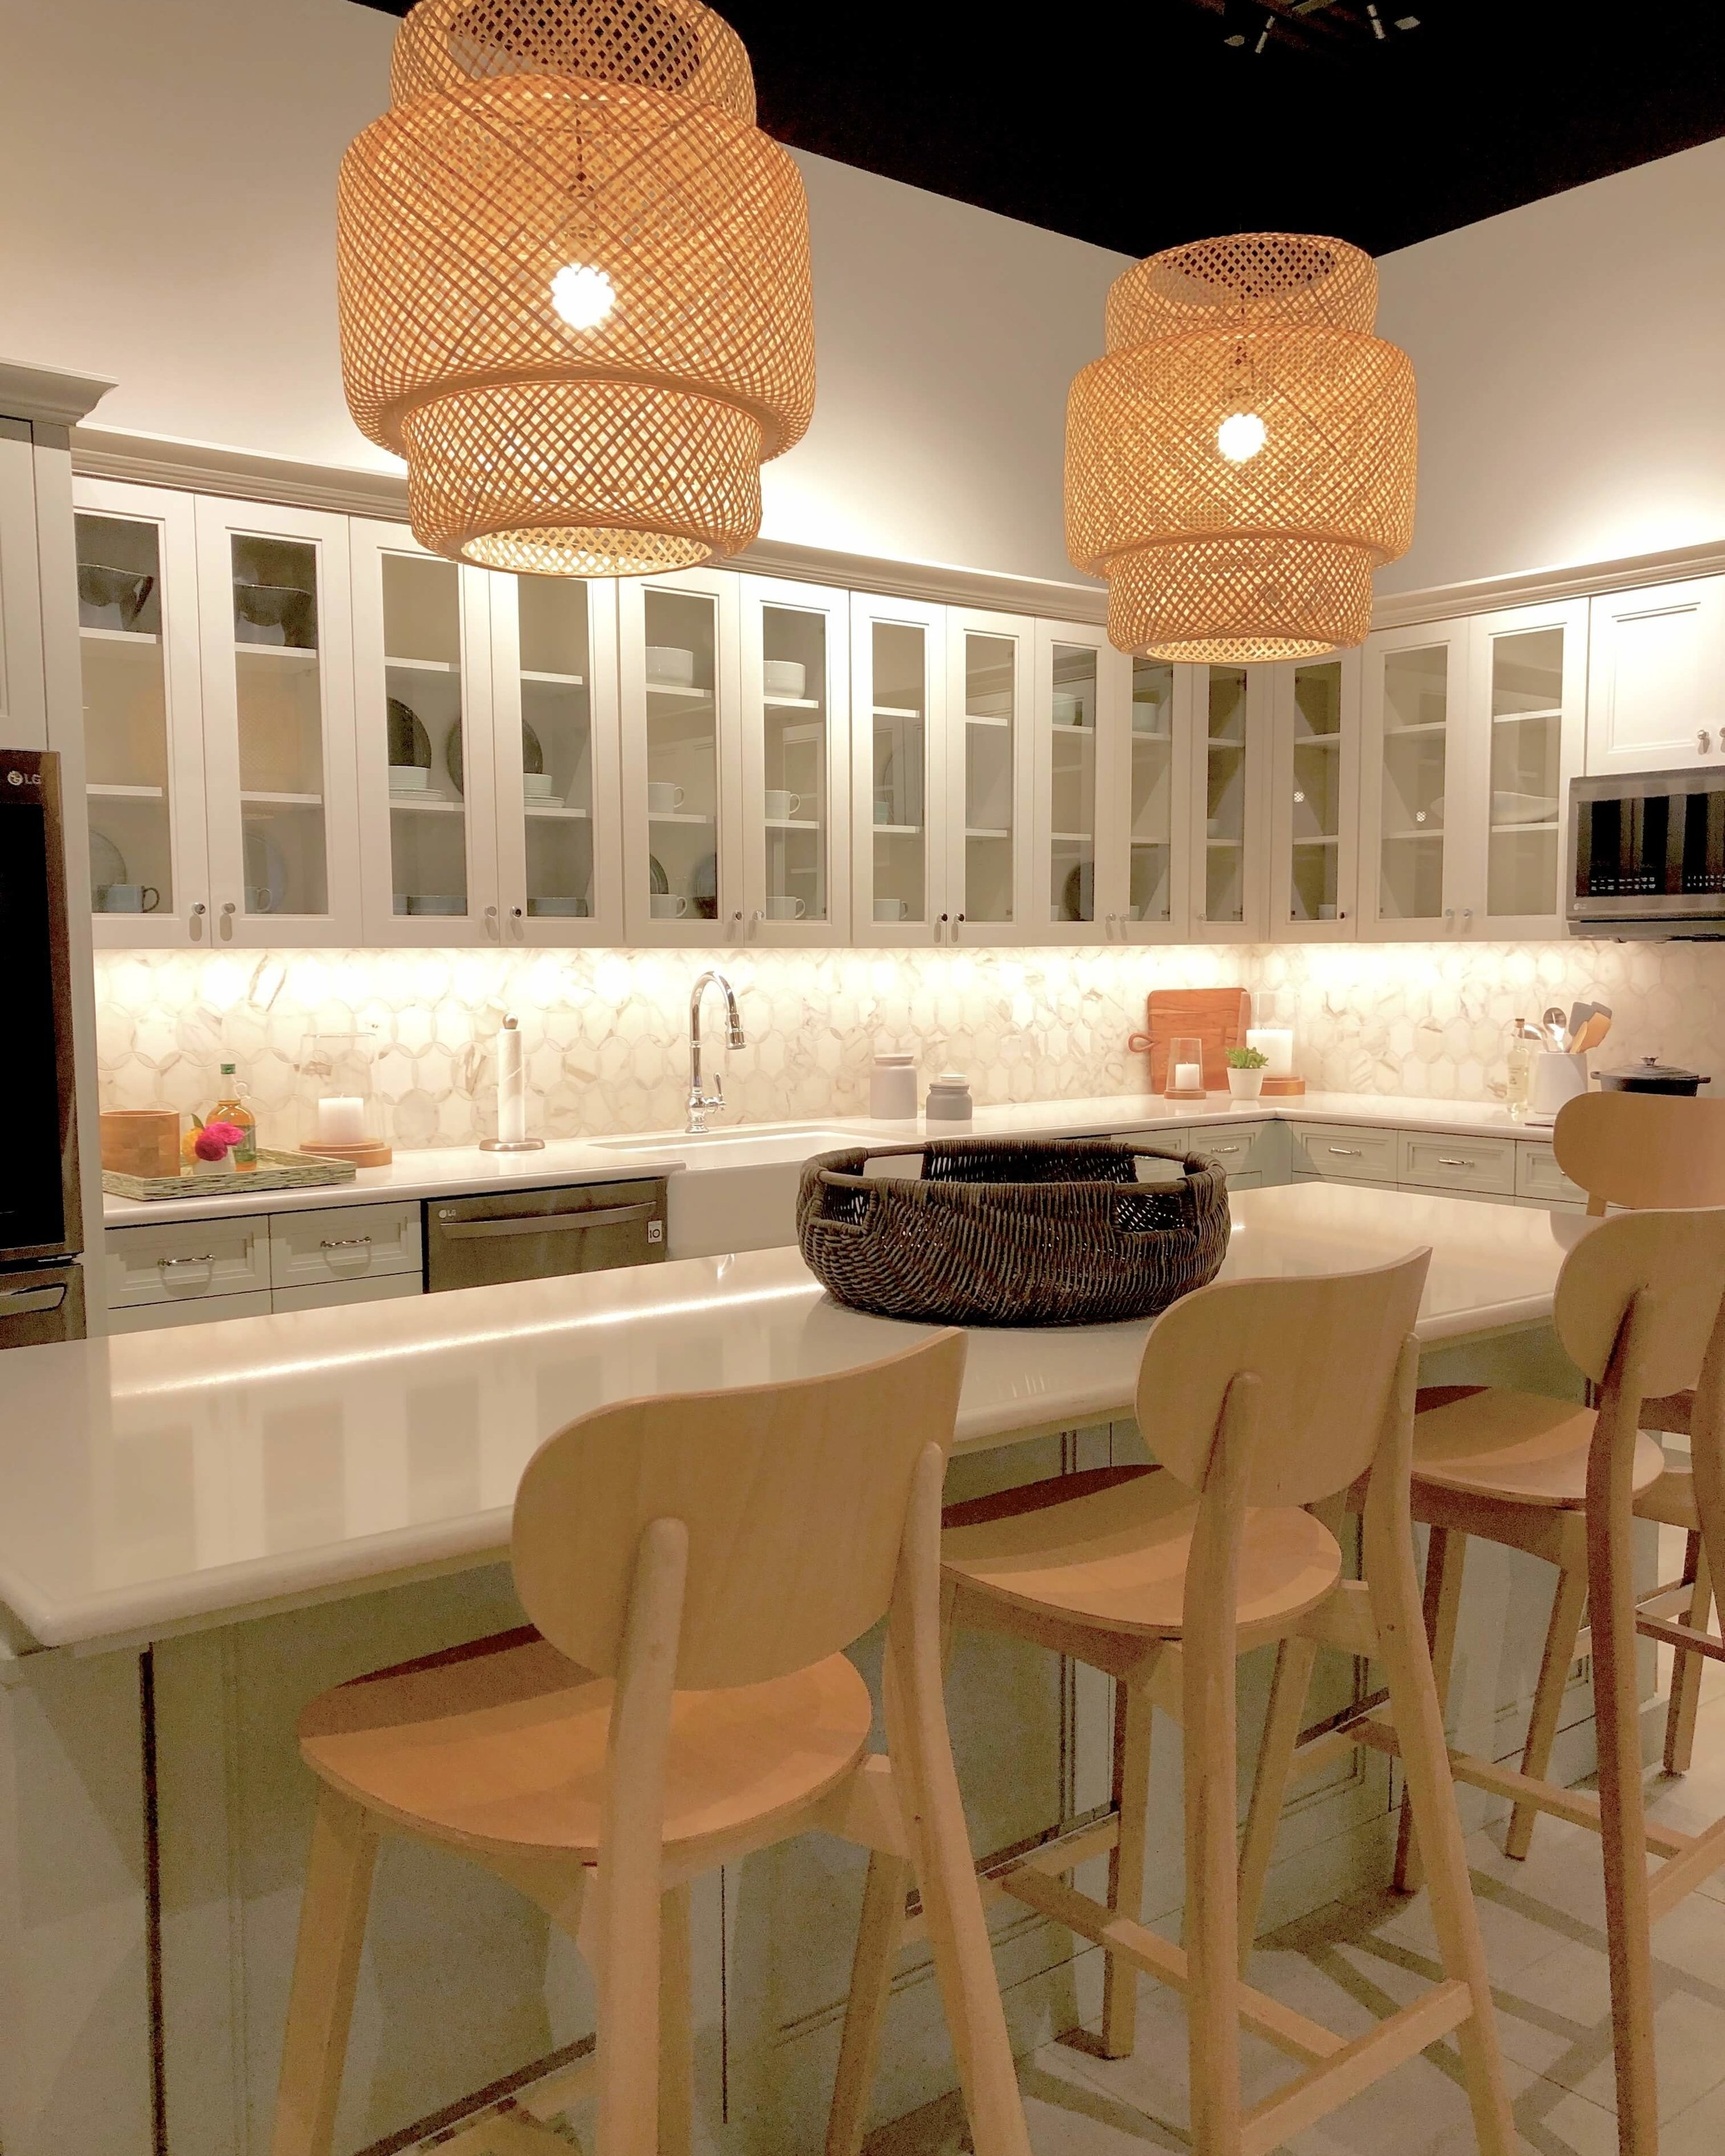 White kitchen with wicker lantern lights and LG Appliances | SKS Appliances Experience and Design Center, Napa